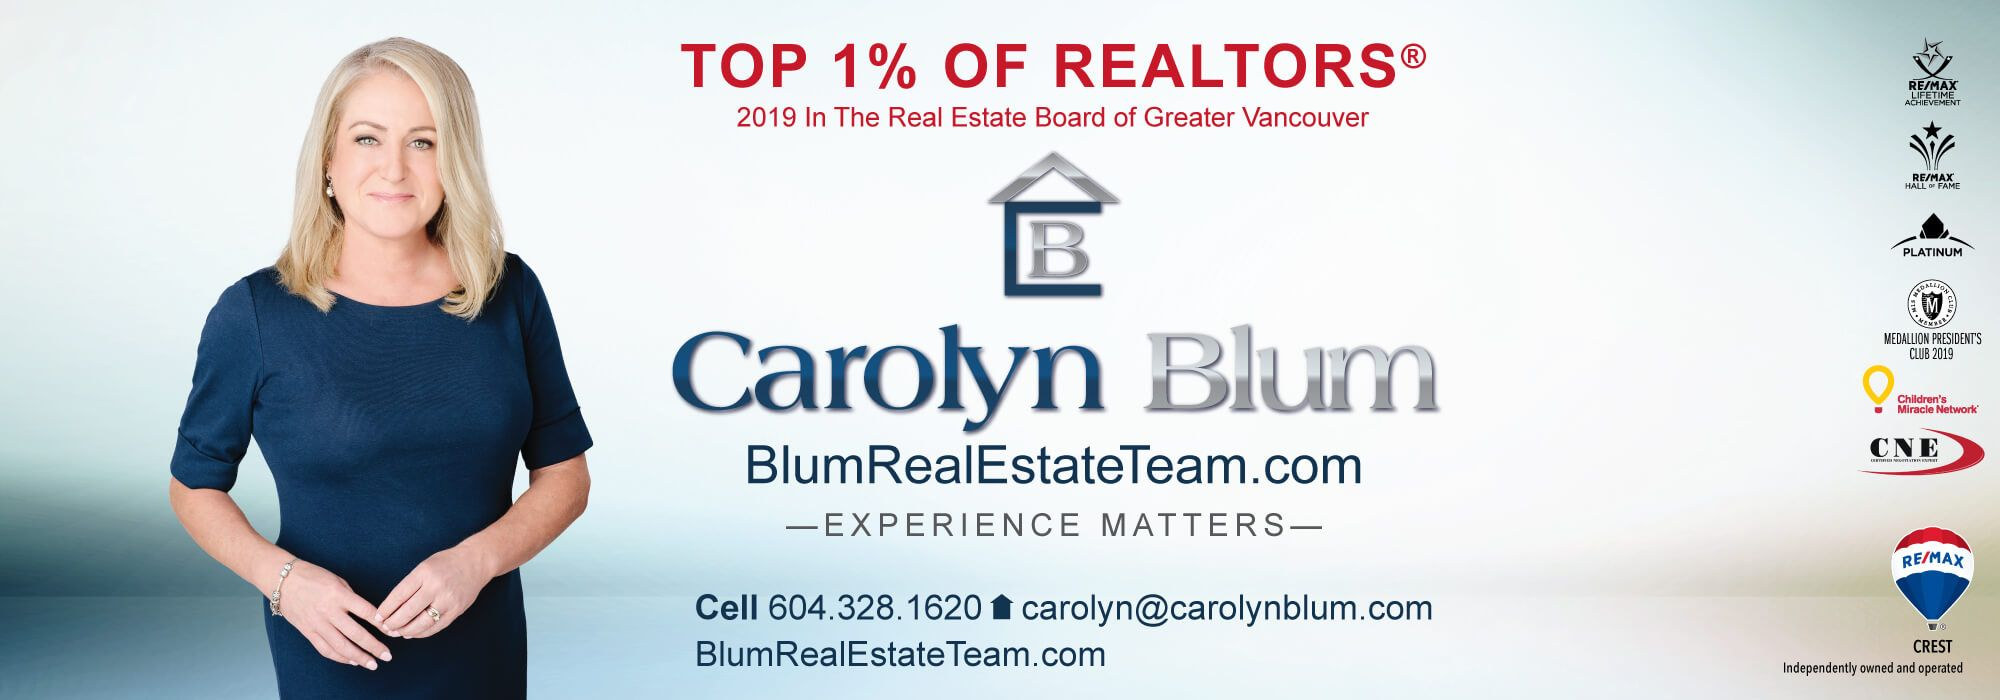 The Blum Real Estate Team